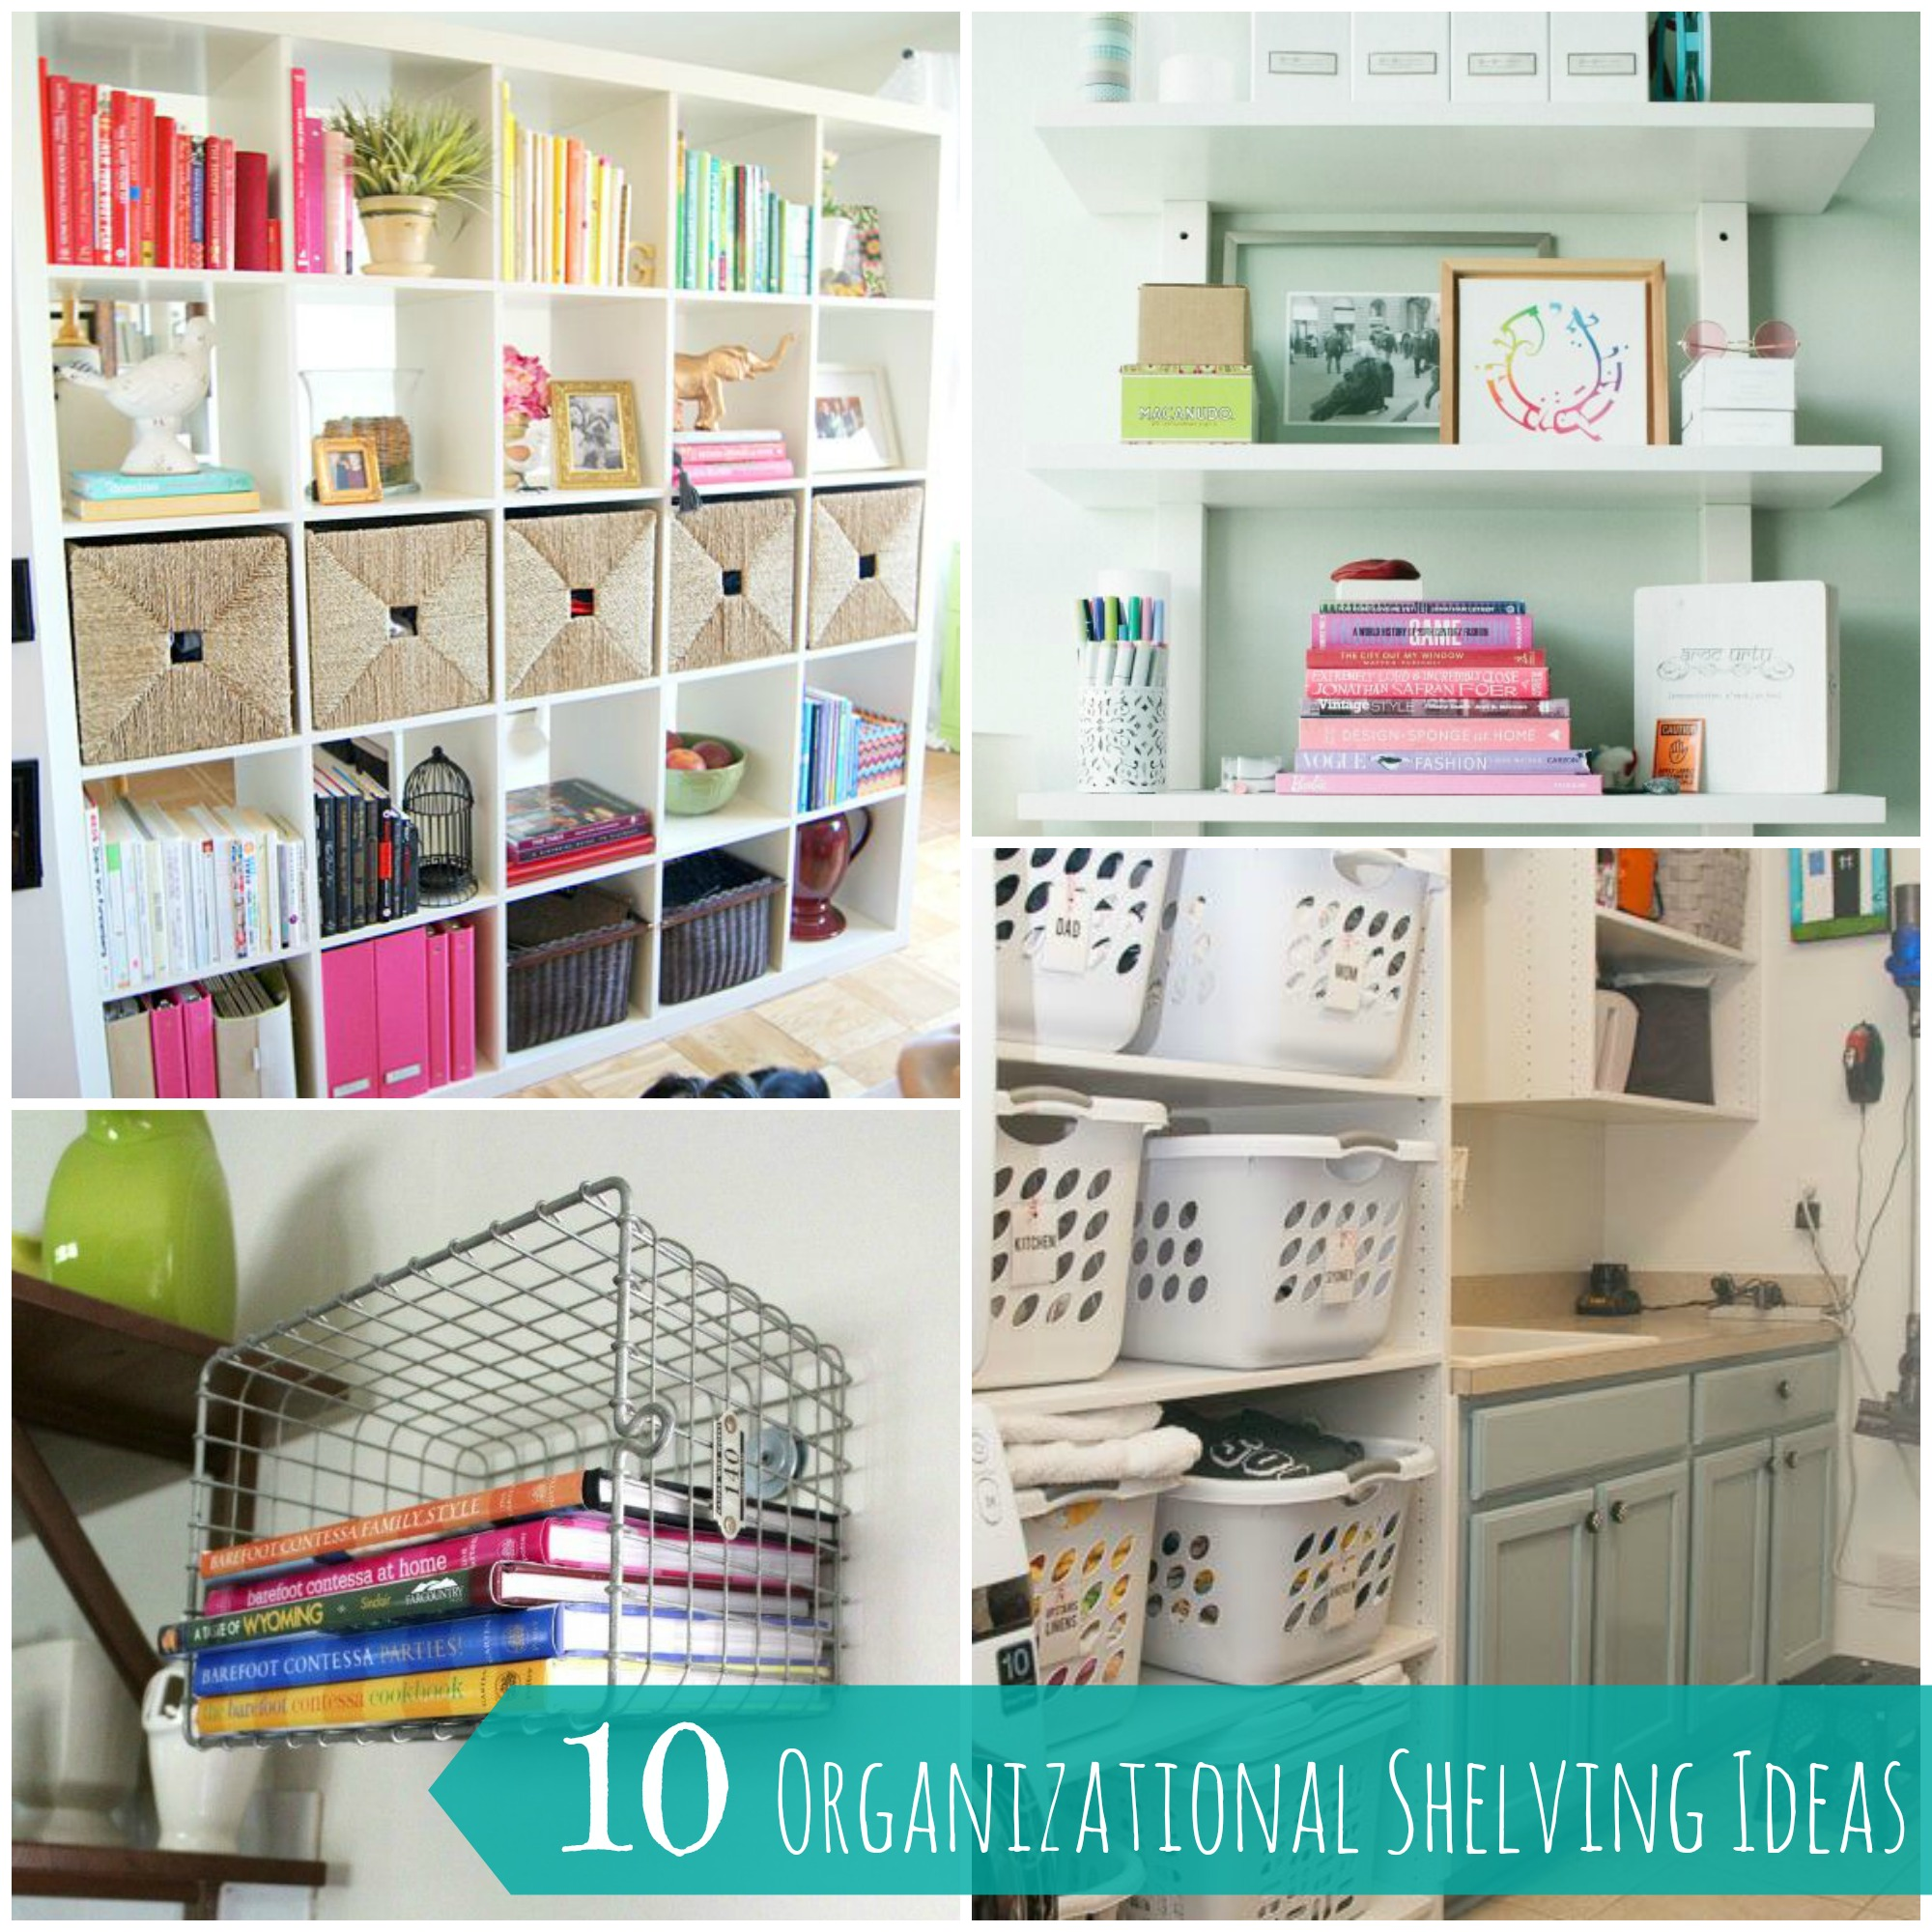 easy-organization-ideas-shelving-tips-for-your-home-diy-tutorials